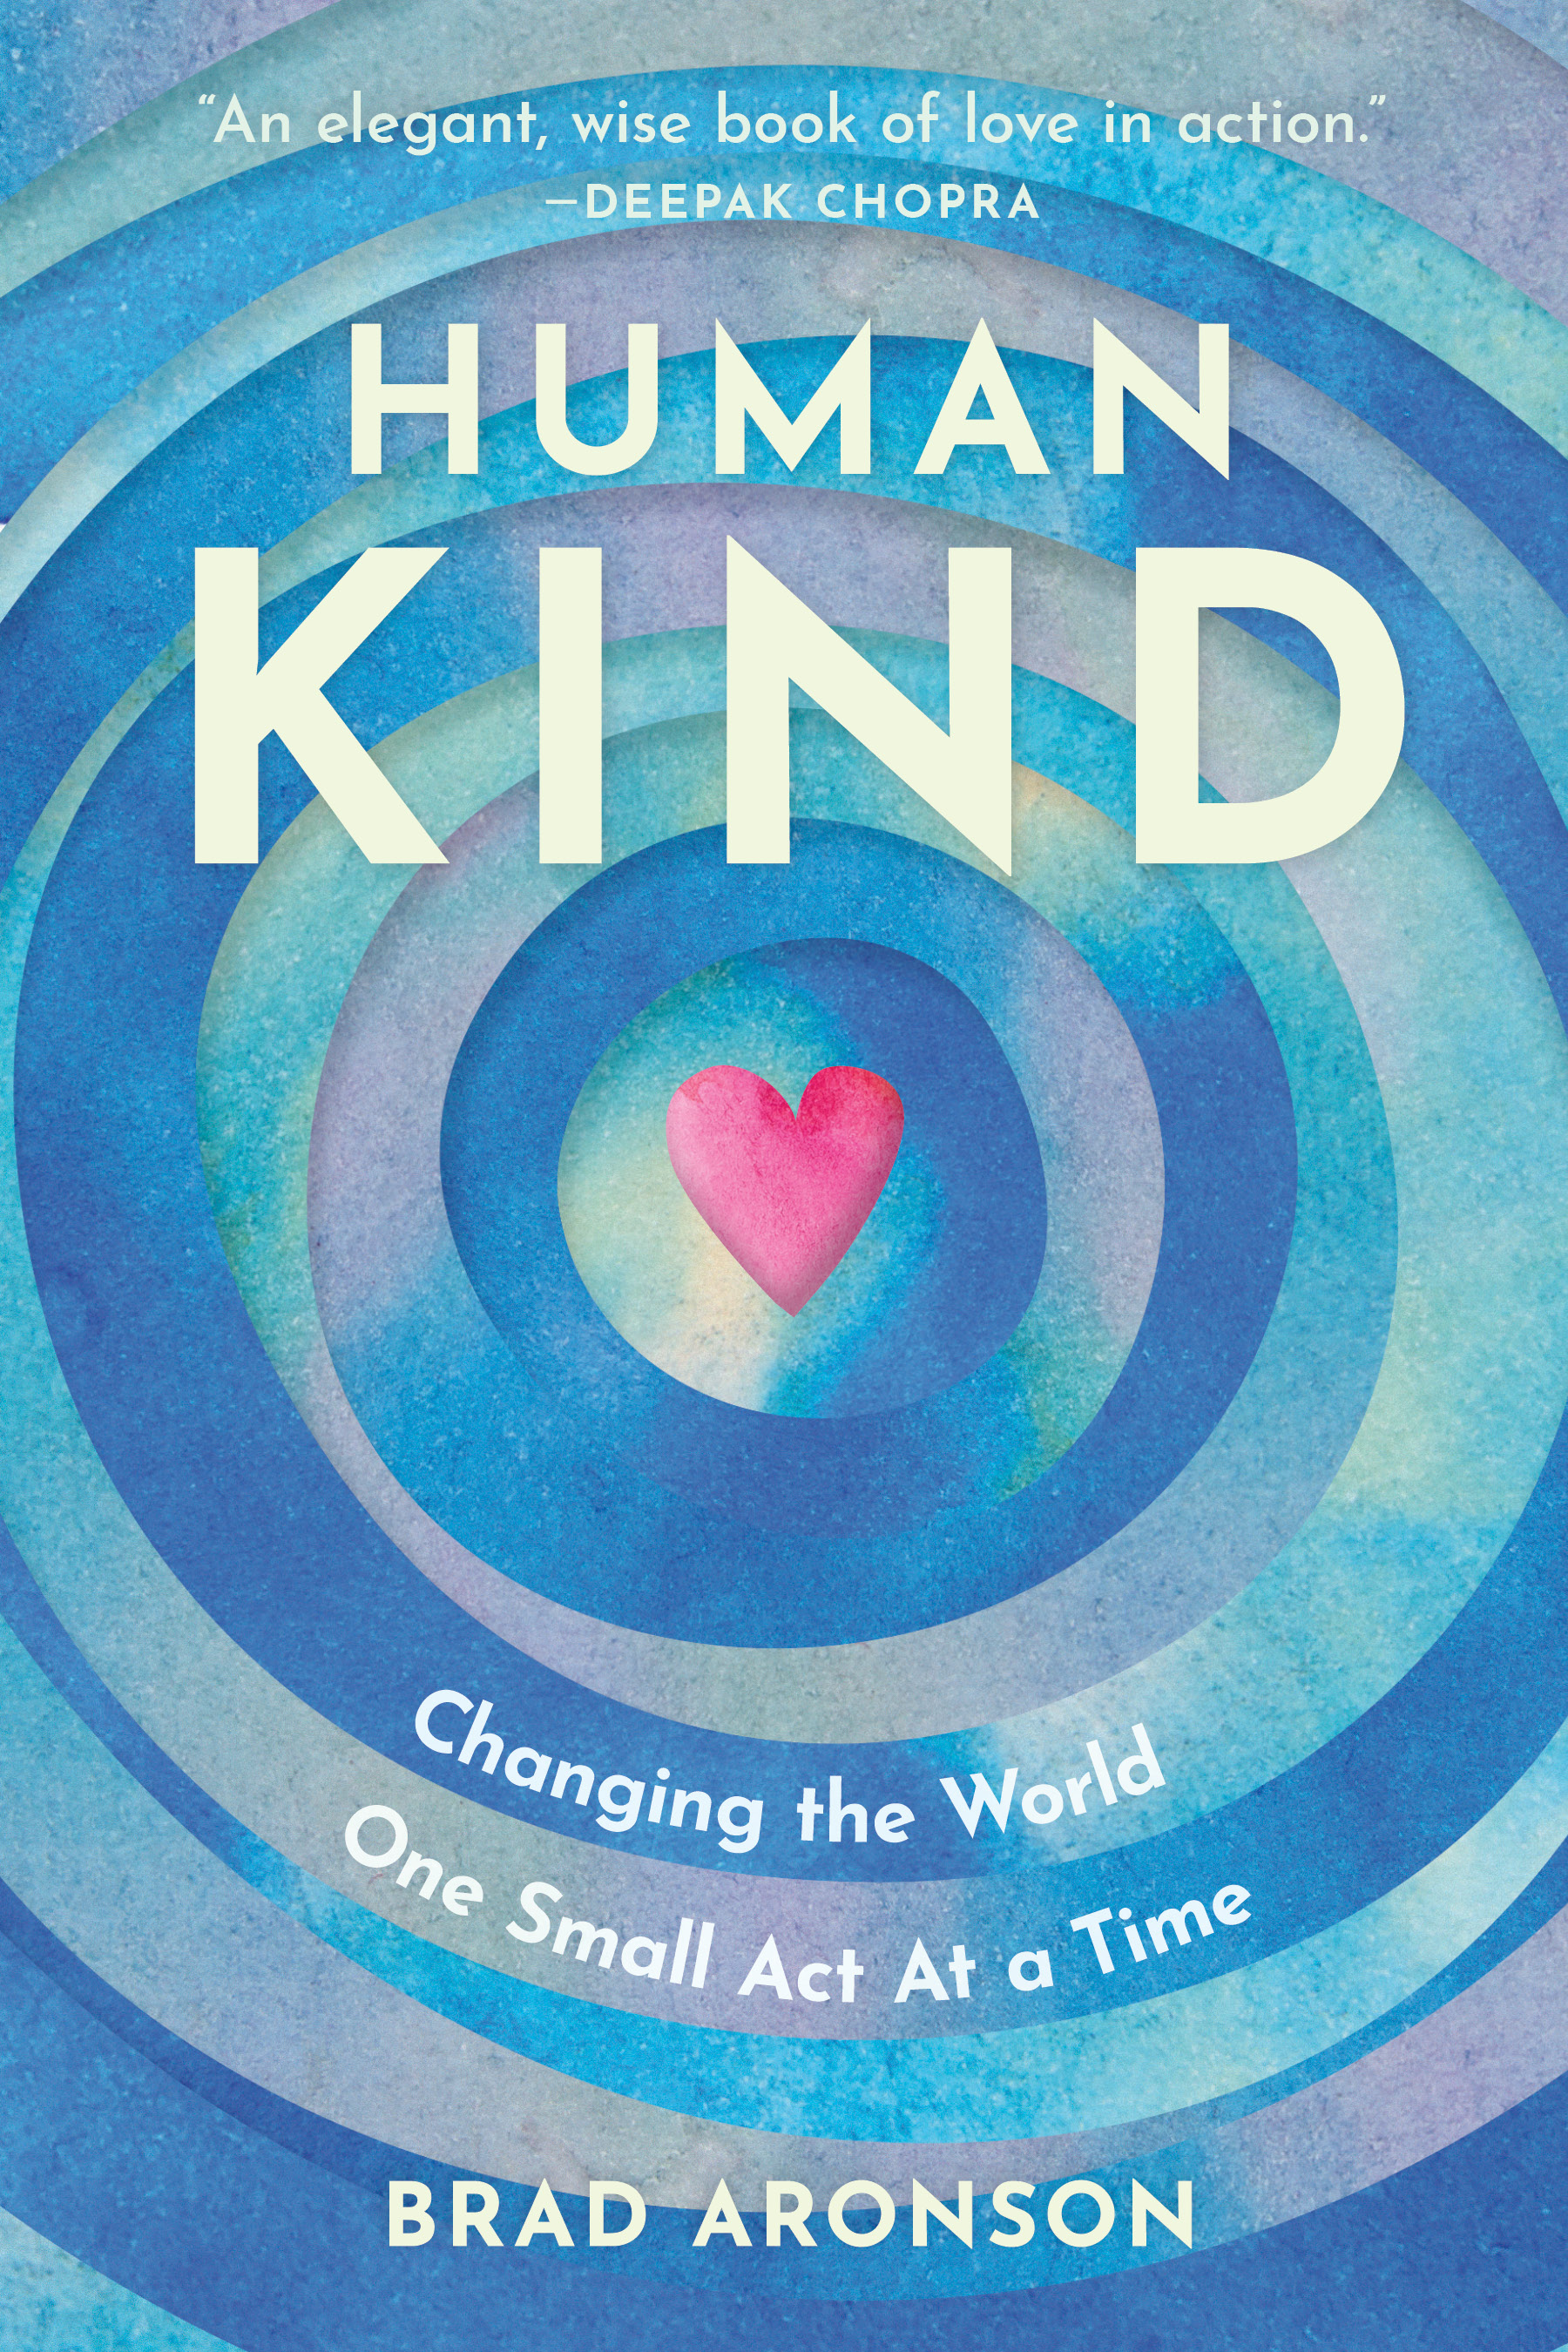 HumanKind_cover_updated-30Oct19